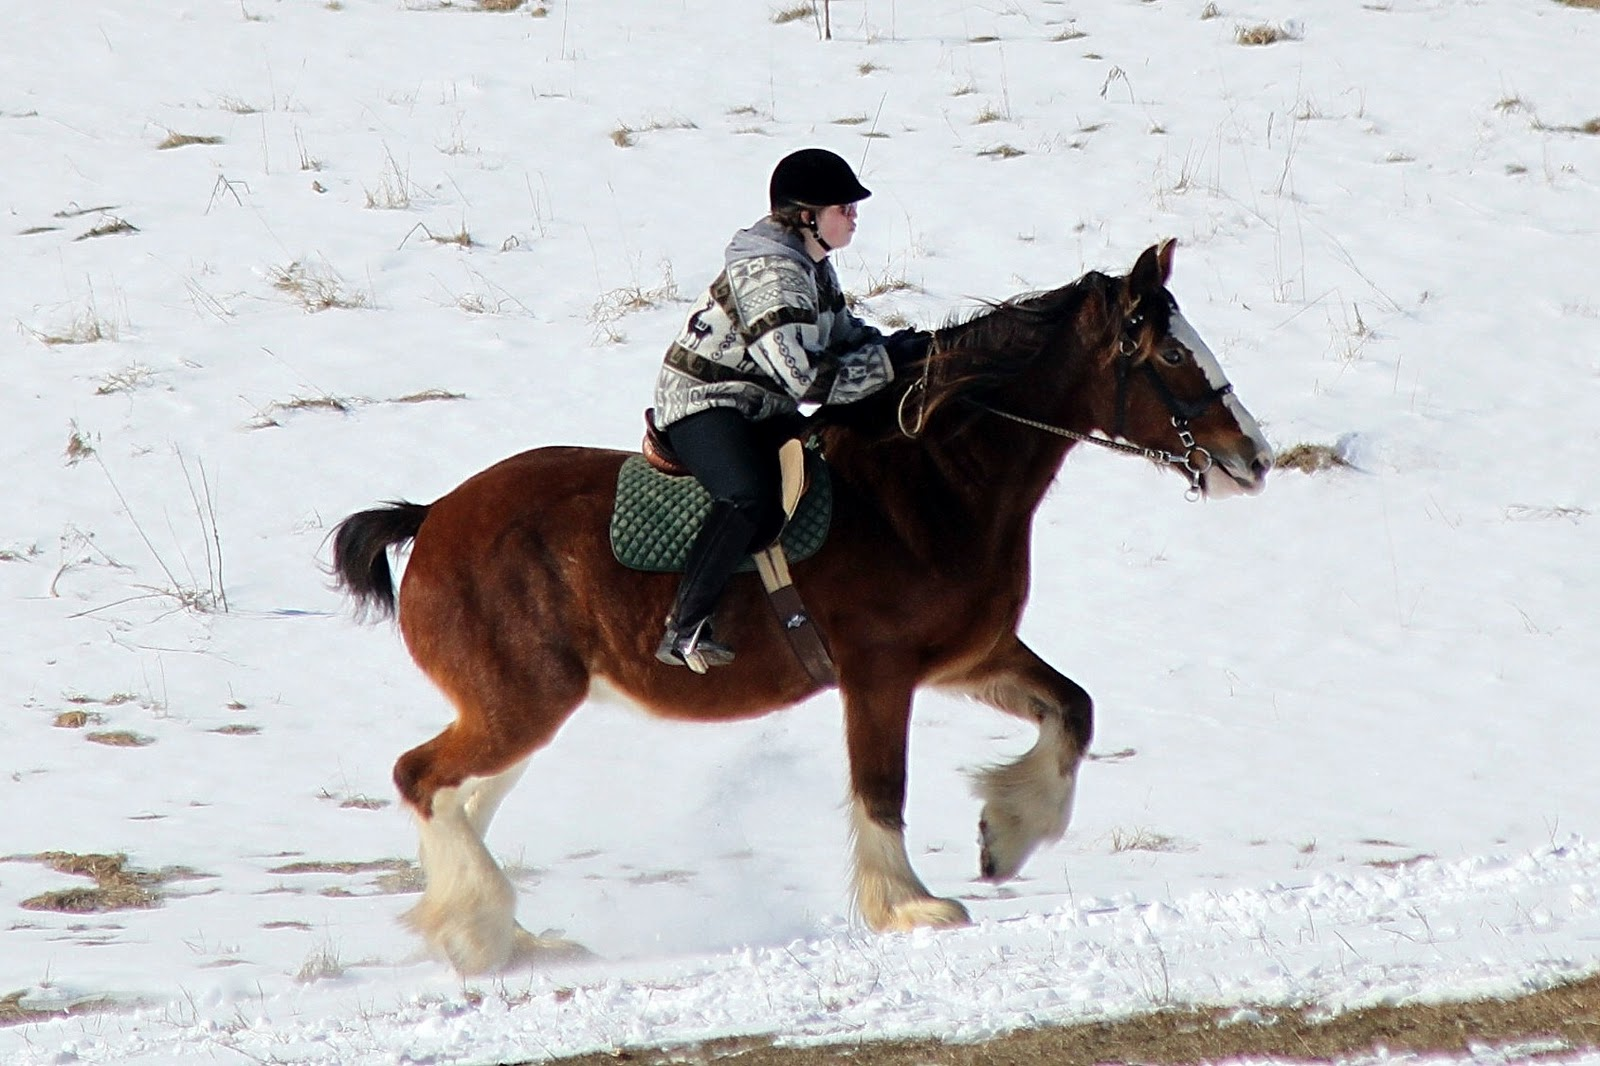 Riding a Clydesdale in the snow can be fun